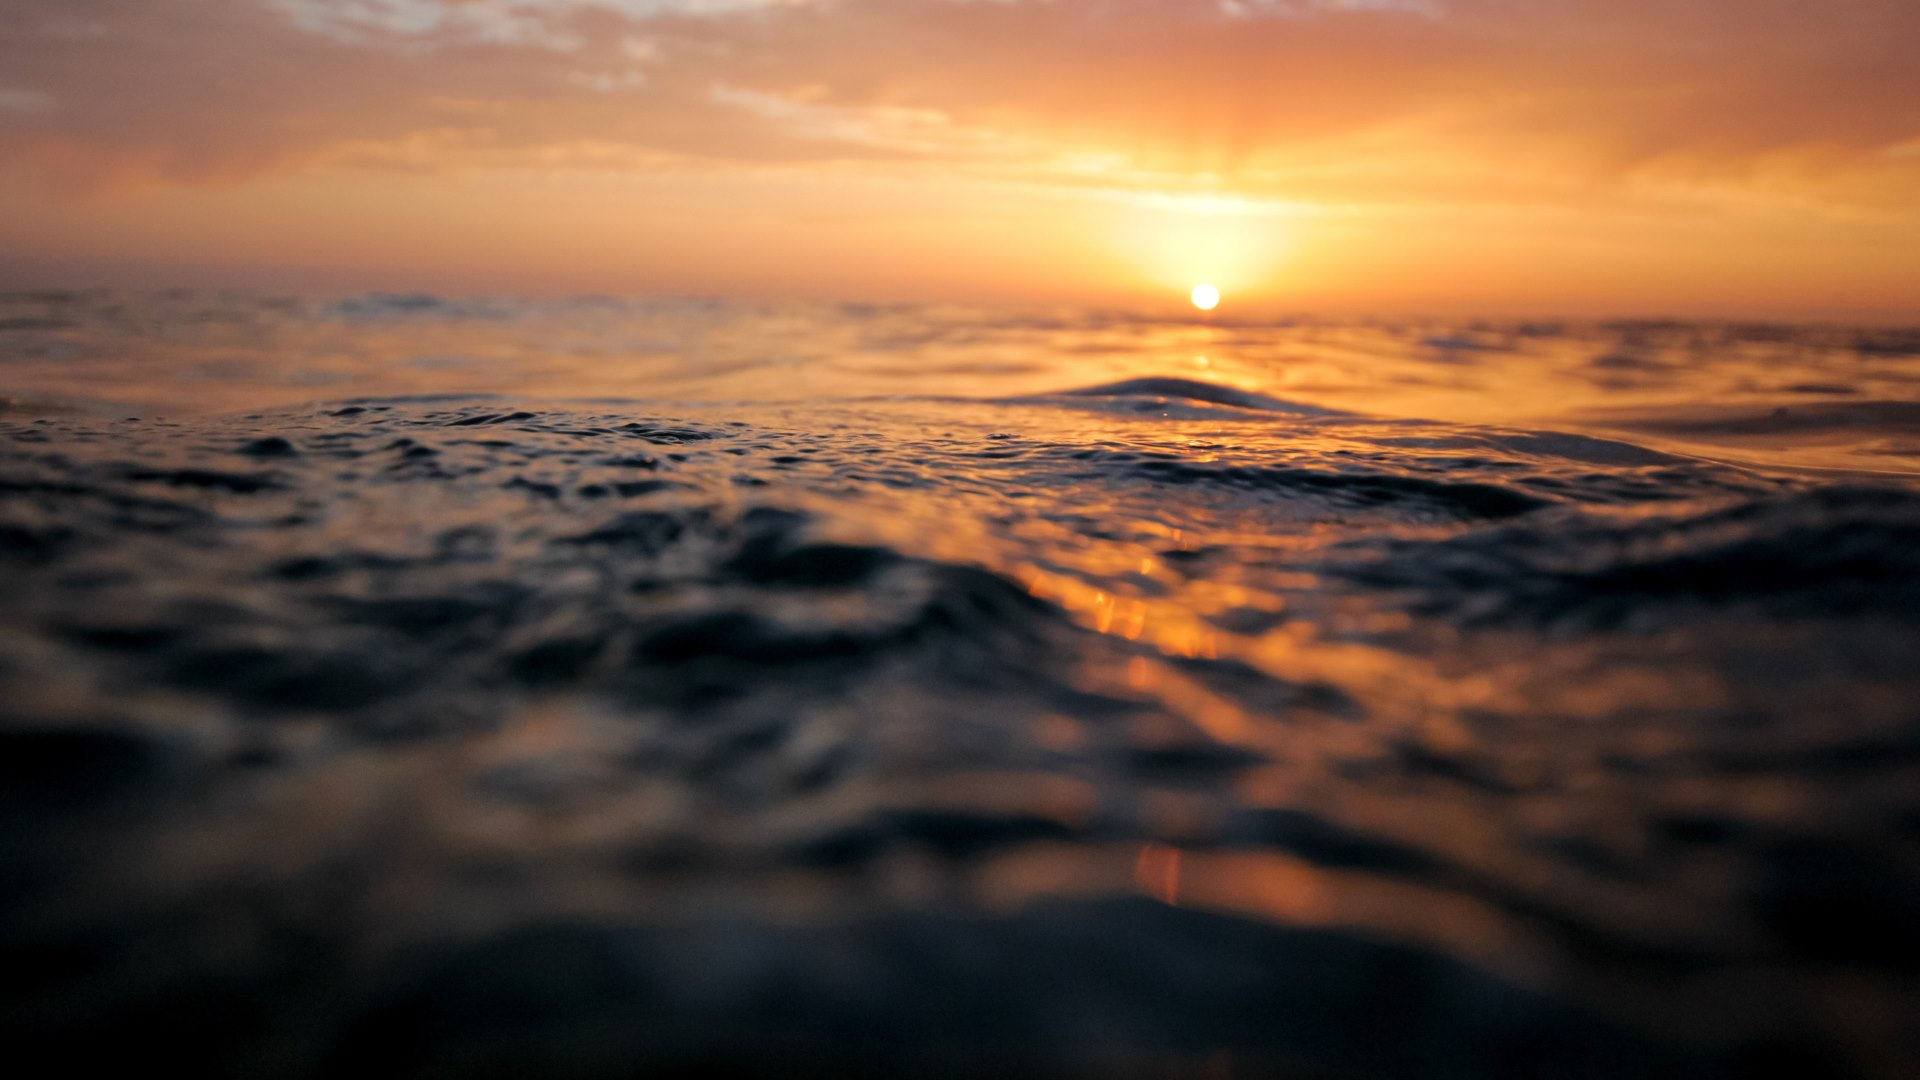 sunset and ocean waves wallpapers